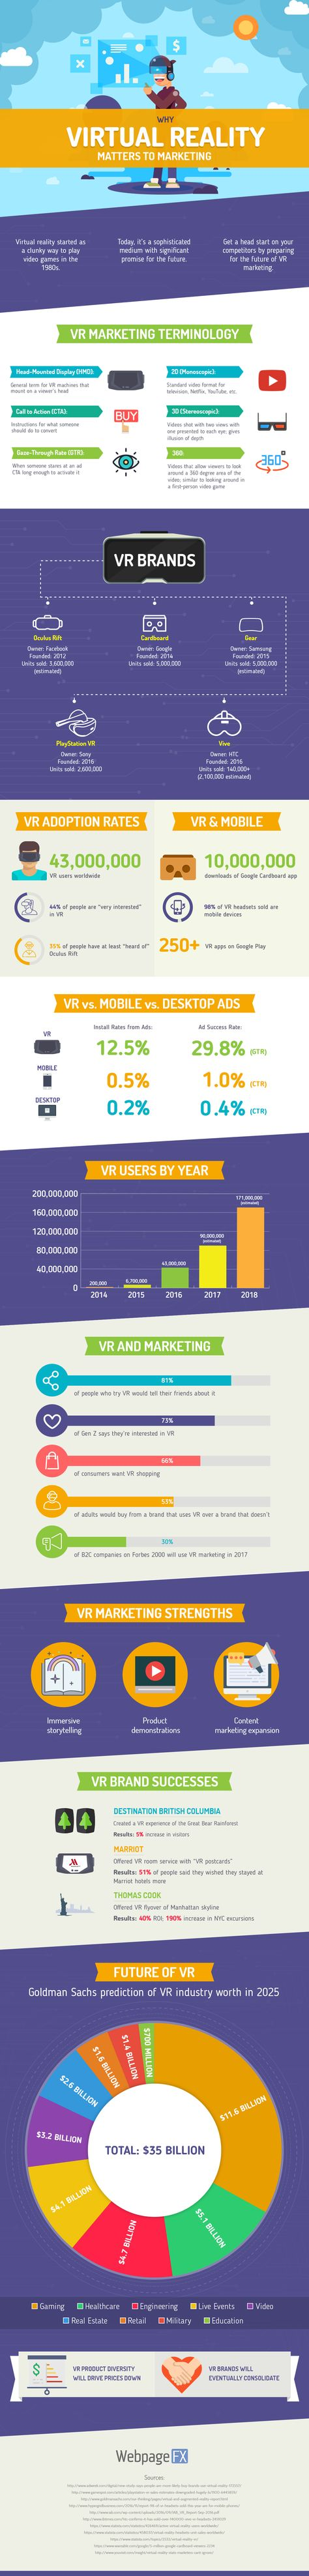 Why Virtual Reality Matters to Marketing (infographic)